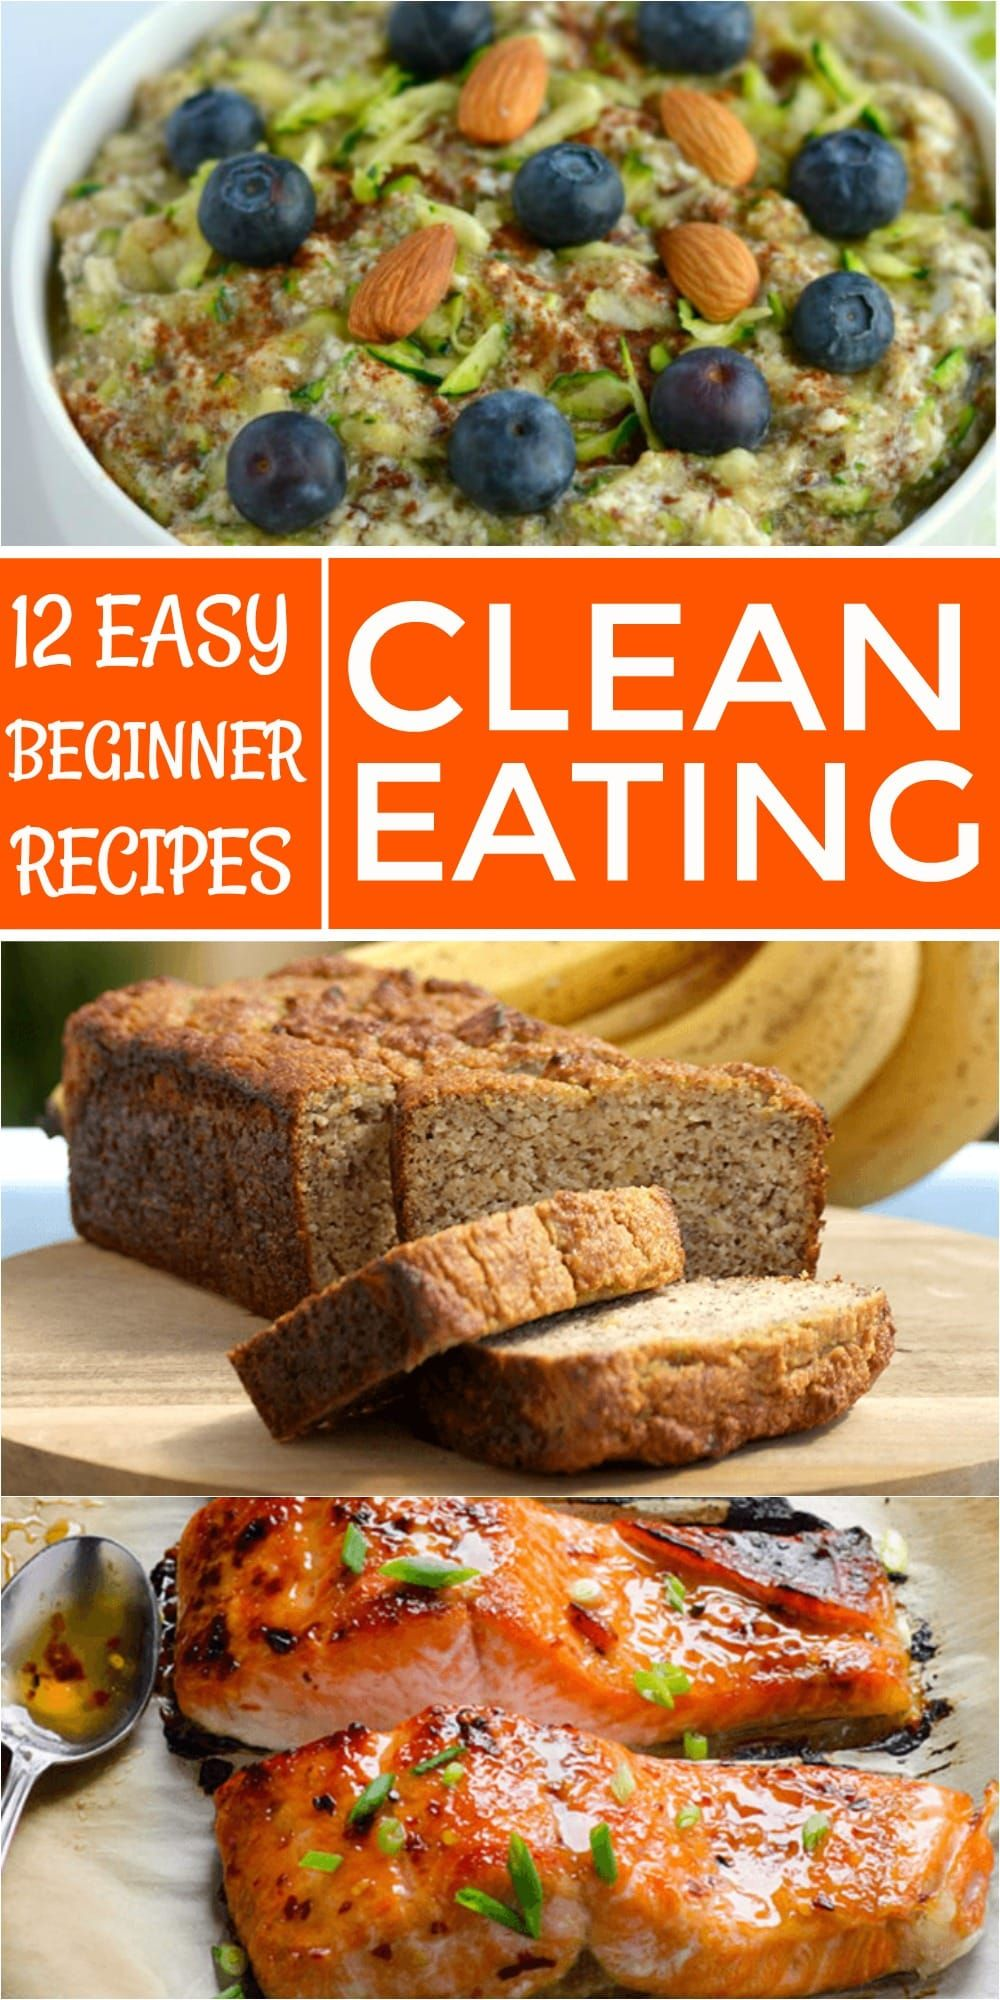 12 Clean Eating Recipes For Beginners